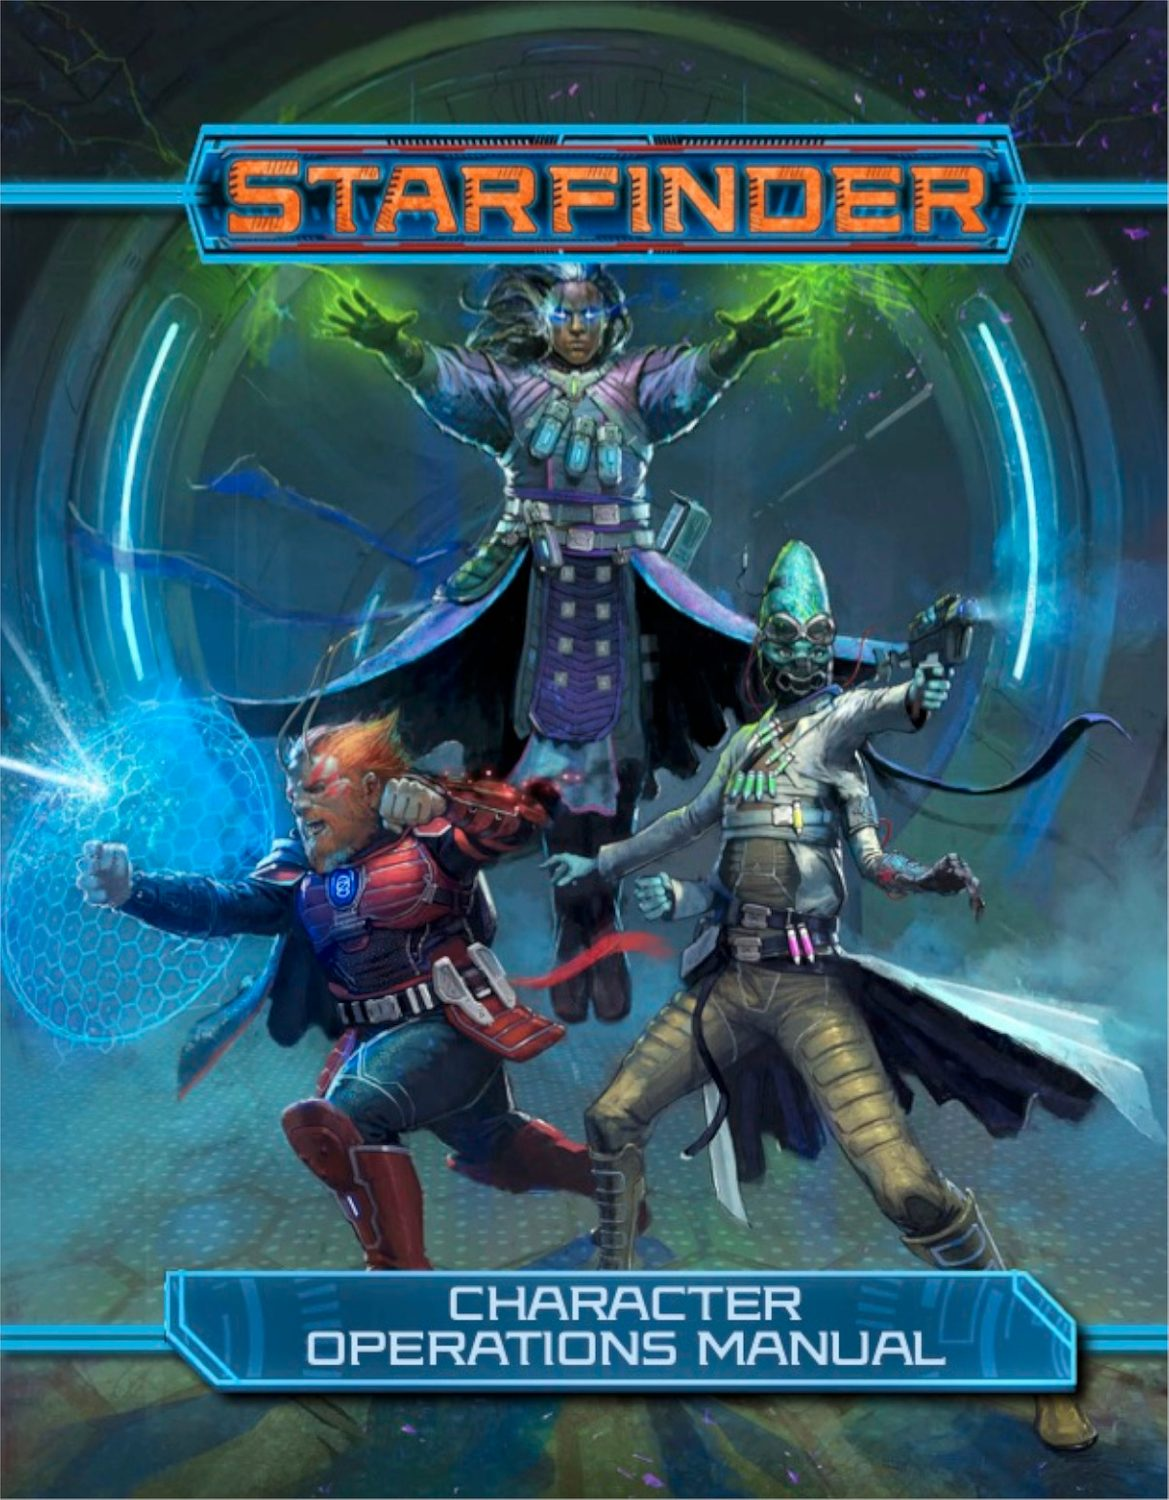 Starfinder Character Operations Manual - Paizo